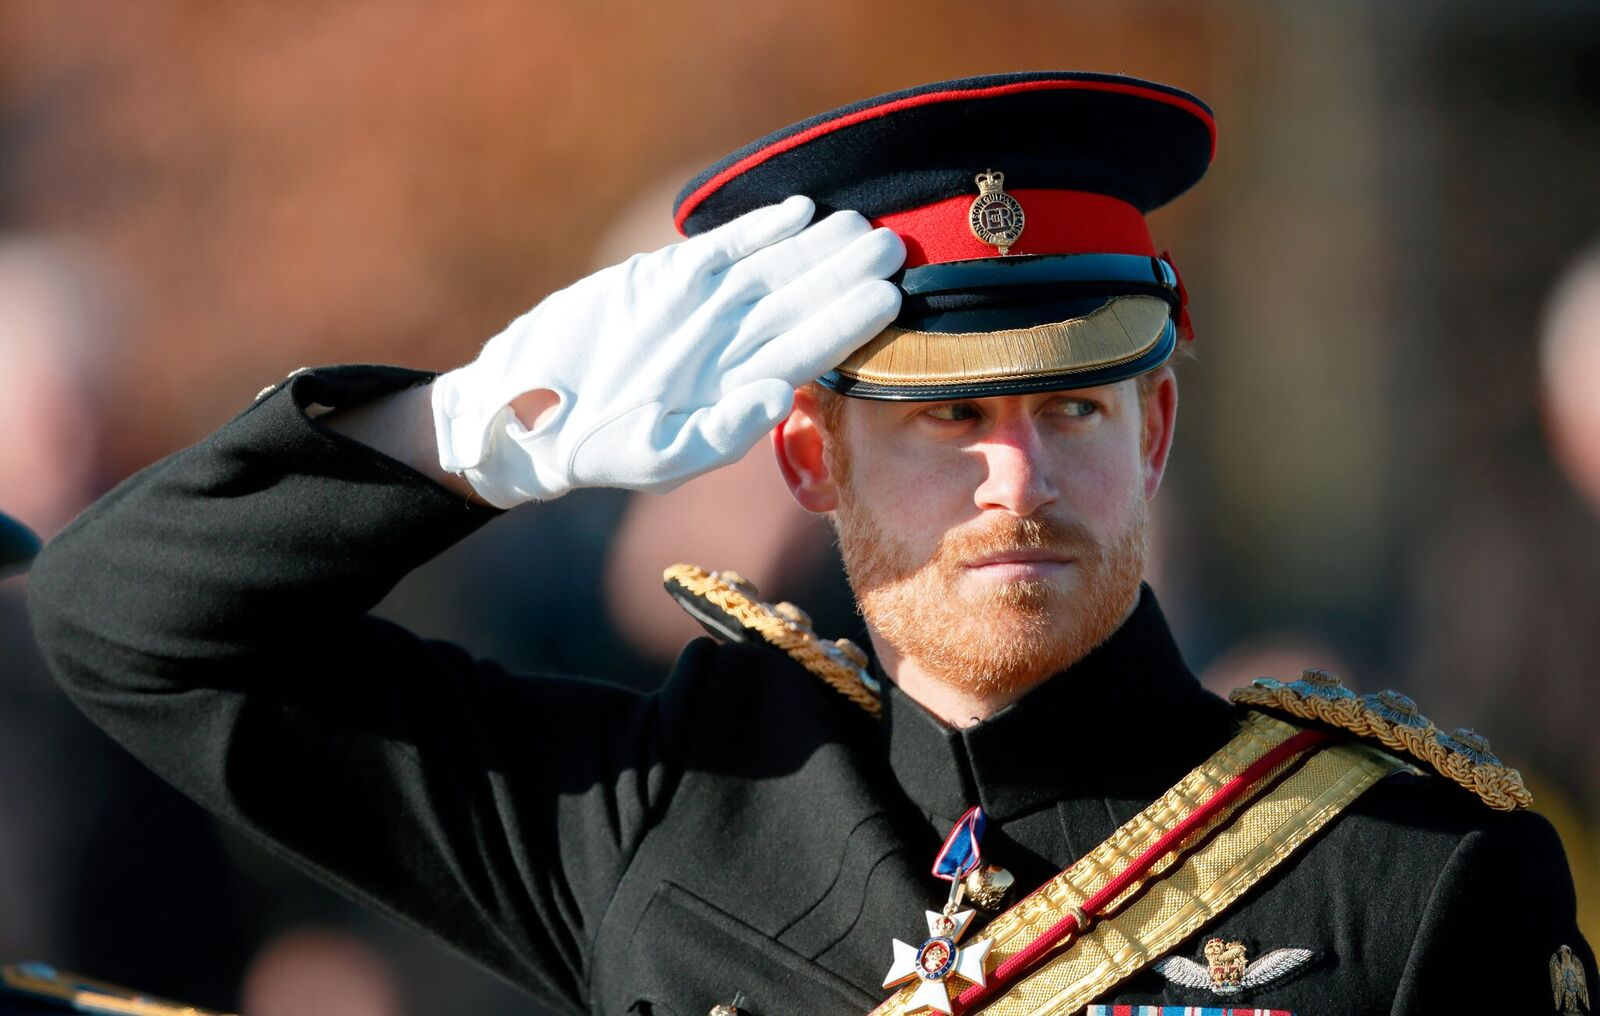 rince Harry attends the Armistice Day Service at the National Memorial Arboretum on November 11, 2016 in Alrewas, England | Photo: Getty Images